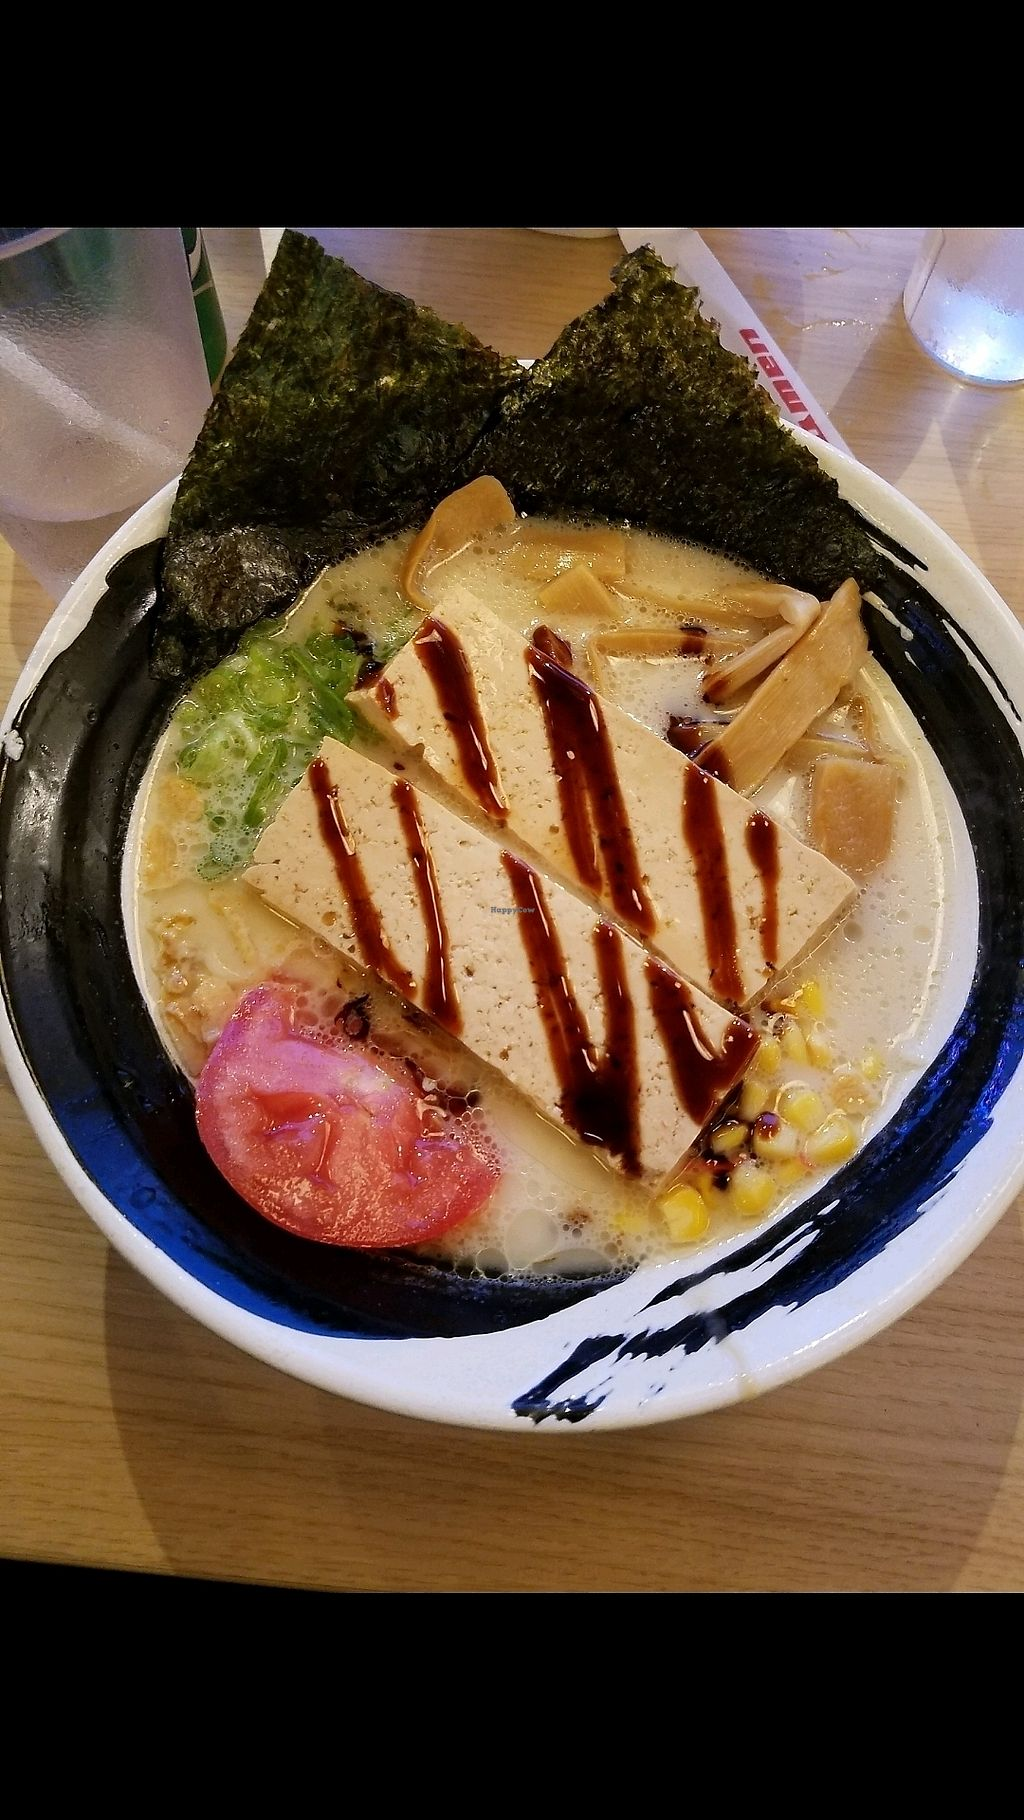 """Photo of Nishiki Ramen  by <a href=""""/members/profile/haleydaley"""">haleydaley</a> <br/>vegan noodles+tofu+seaweed  <br/> November 14, 2017  - <a href='/contact/abuse/image/96903/325408'>Report</a>"""